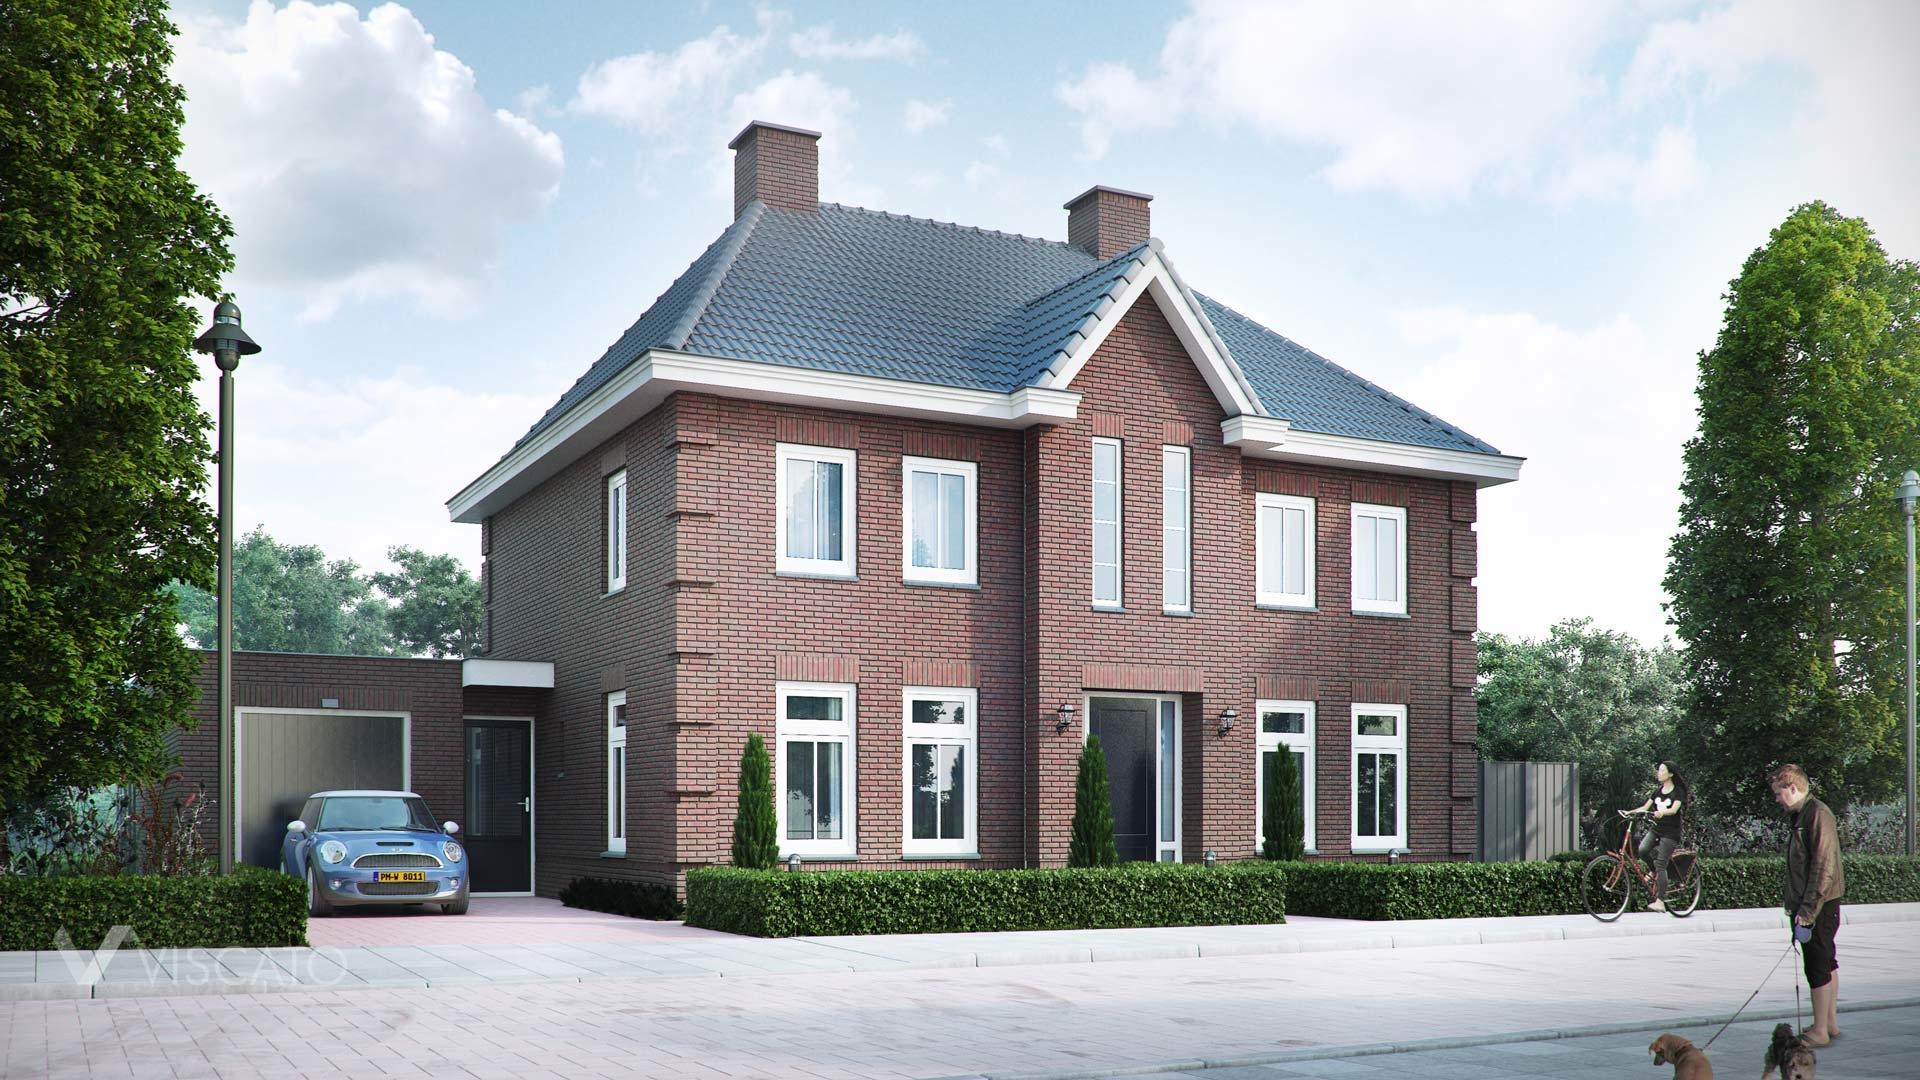 Brick villa house in Holland - street view with entrance and garage